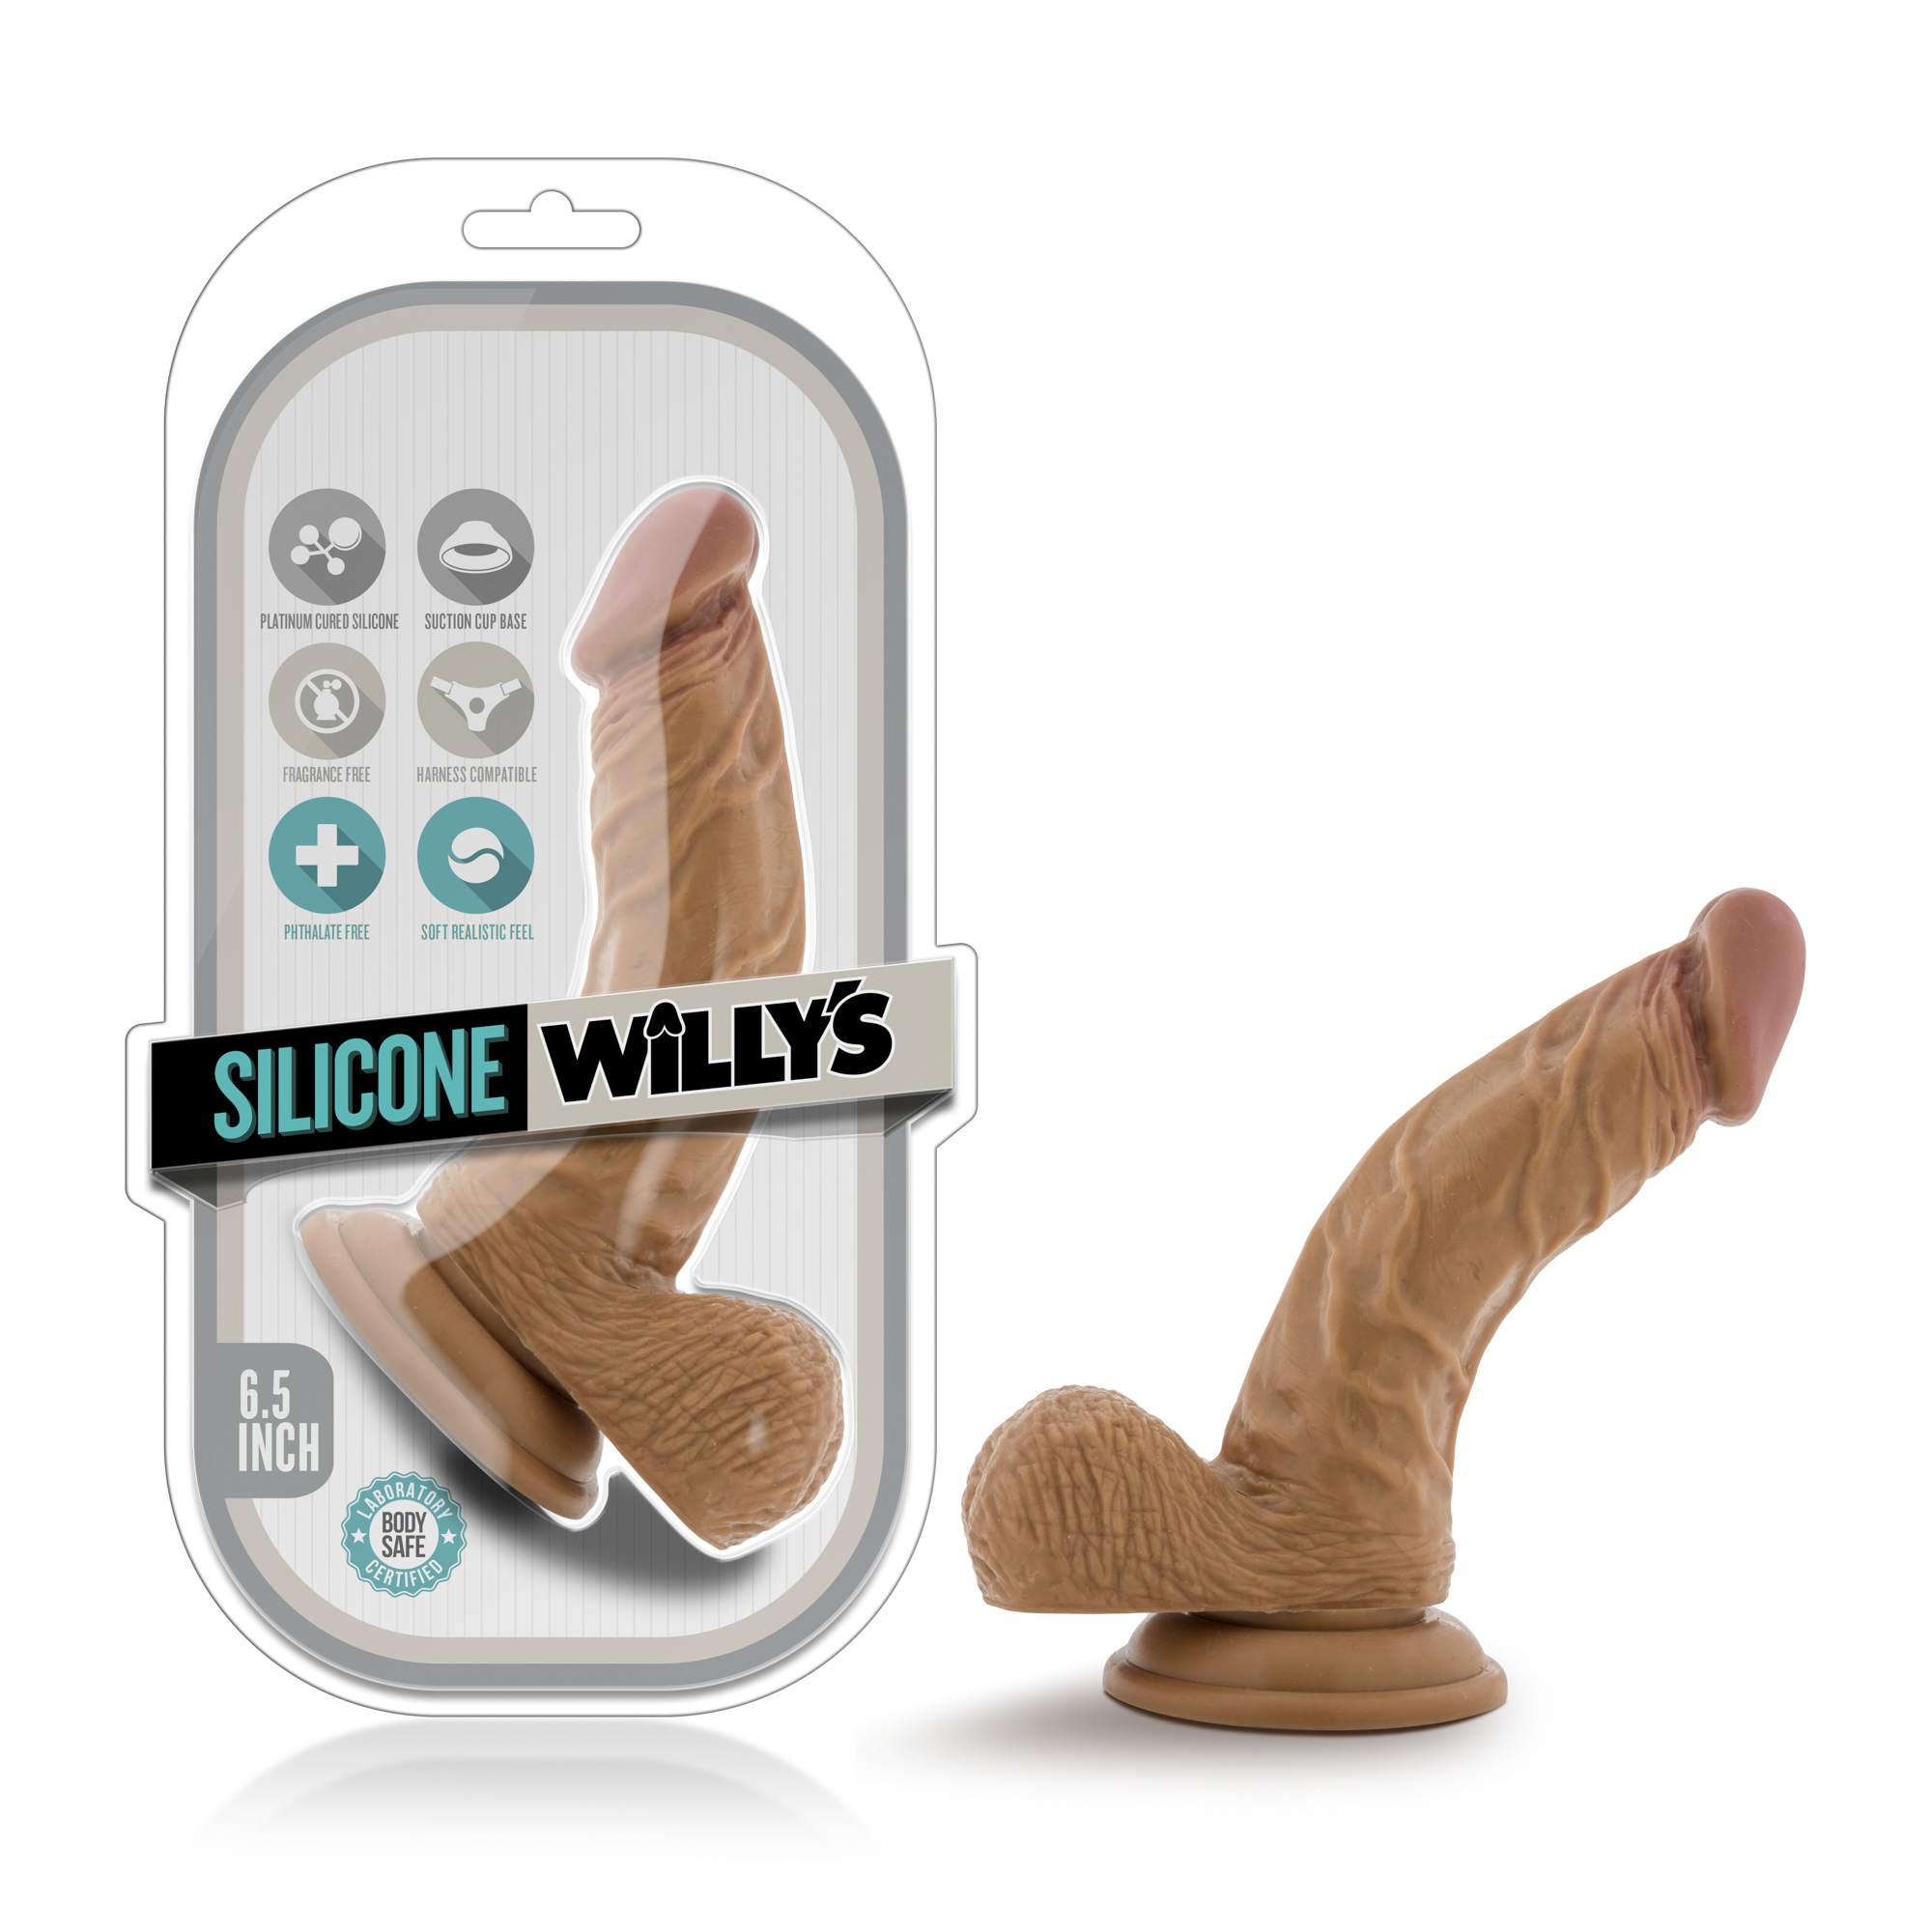 Silicone Willy's - 6.5 Inch Silicone Dildo With Balls - Mocha